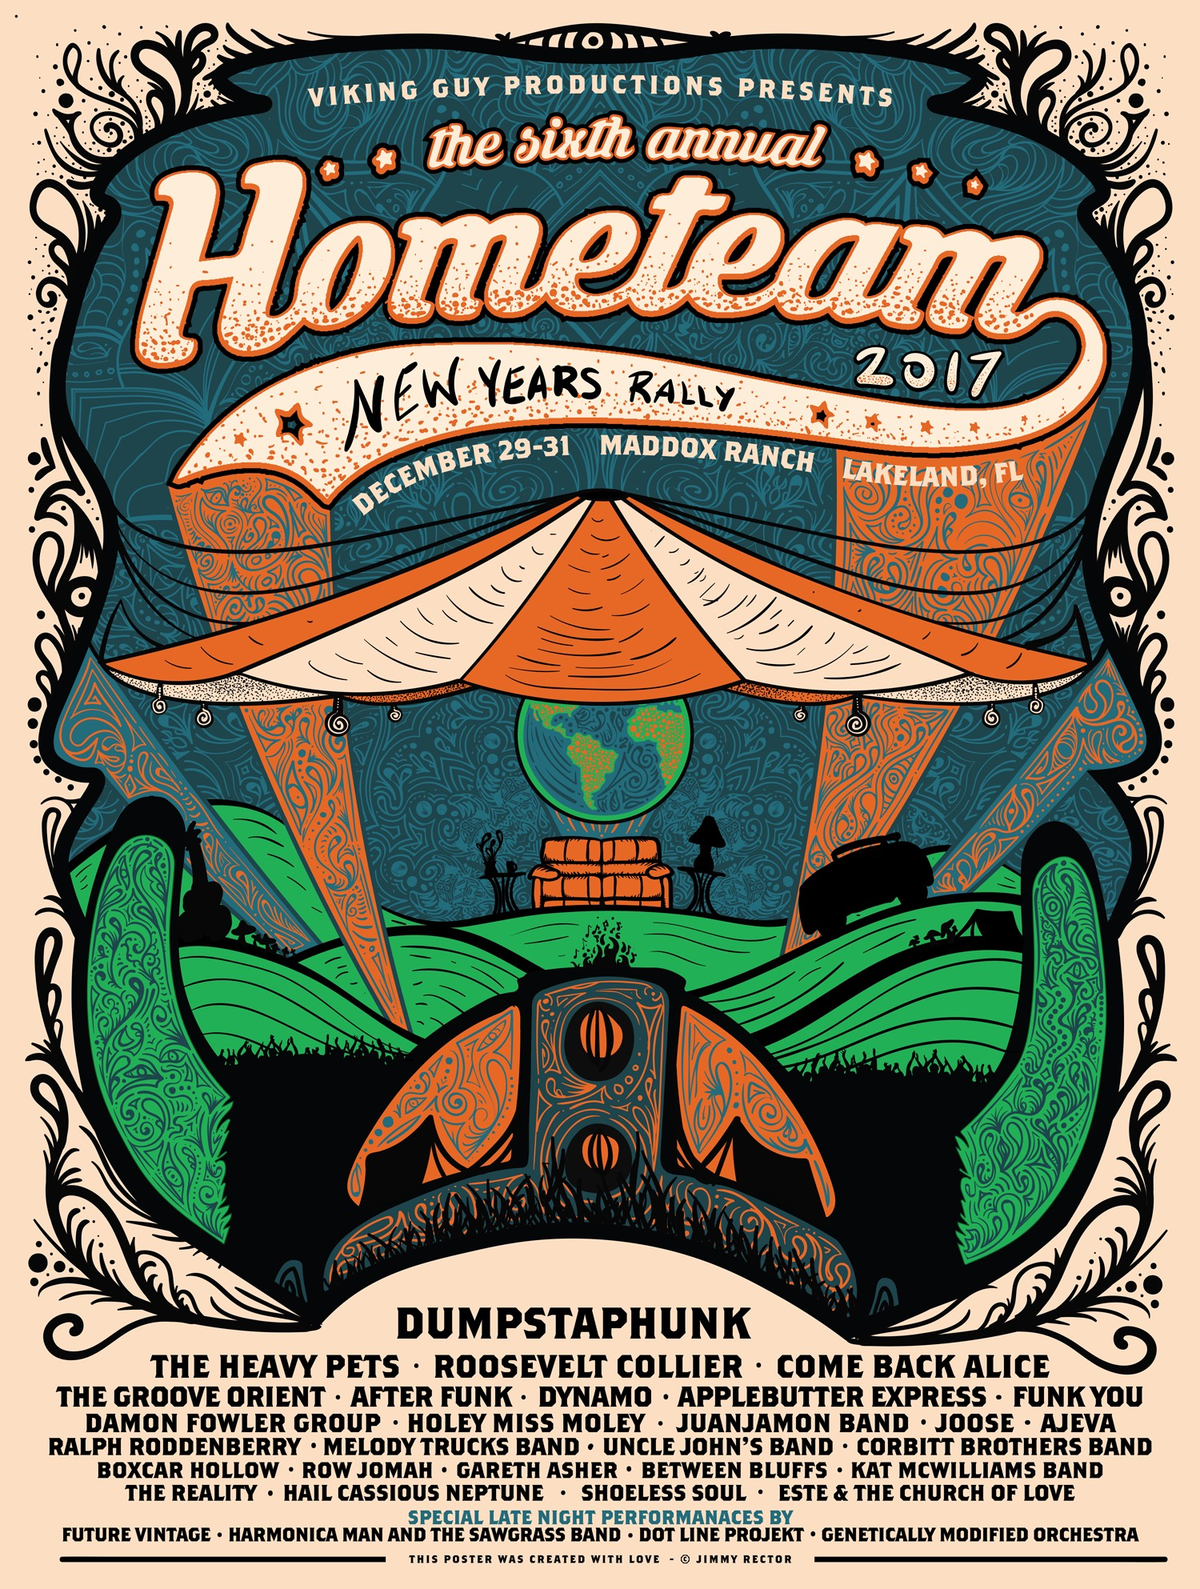 Hometeam New Year's Rally 2017